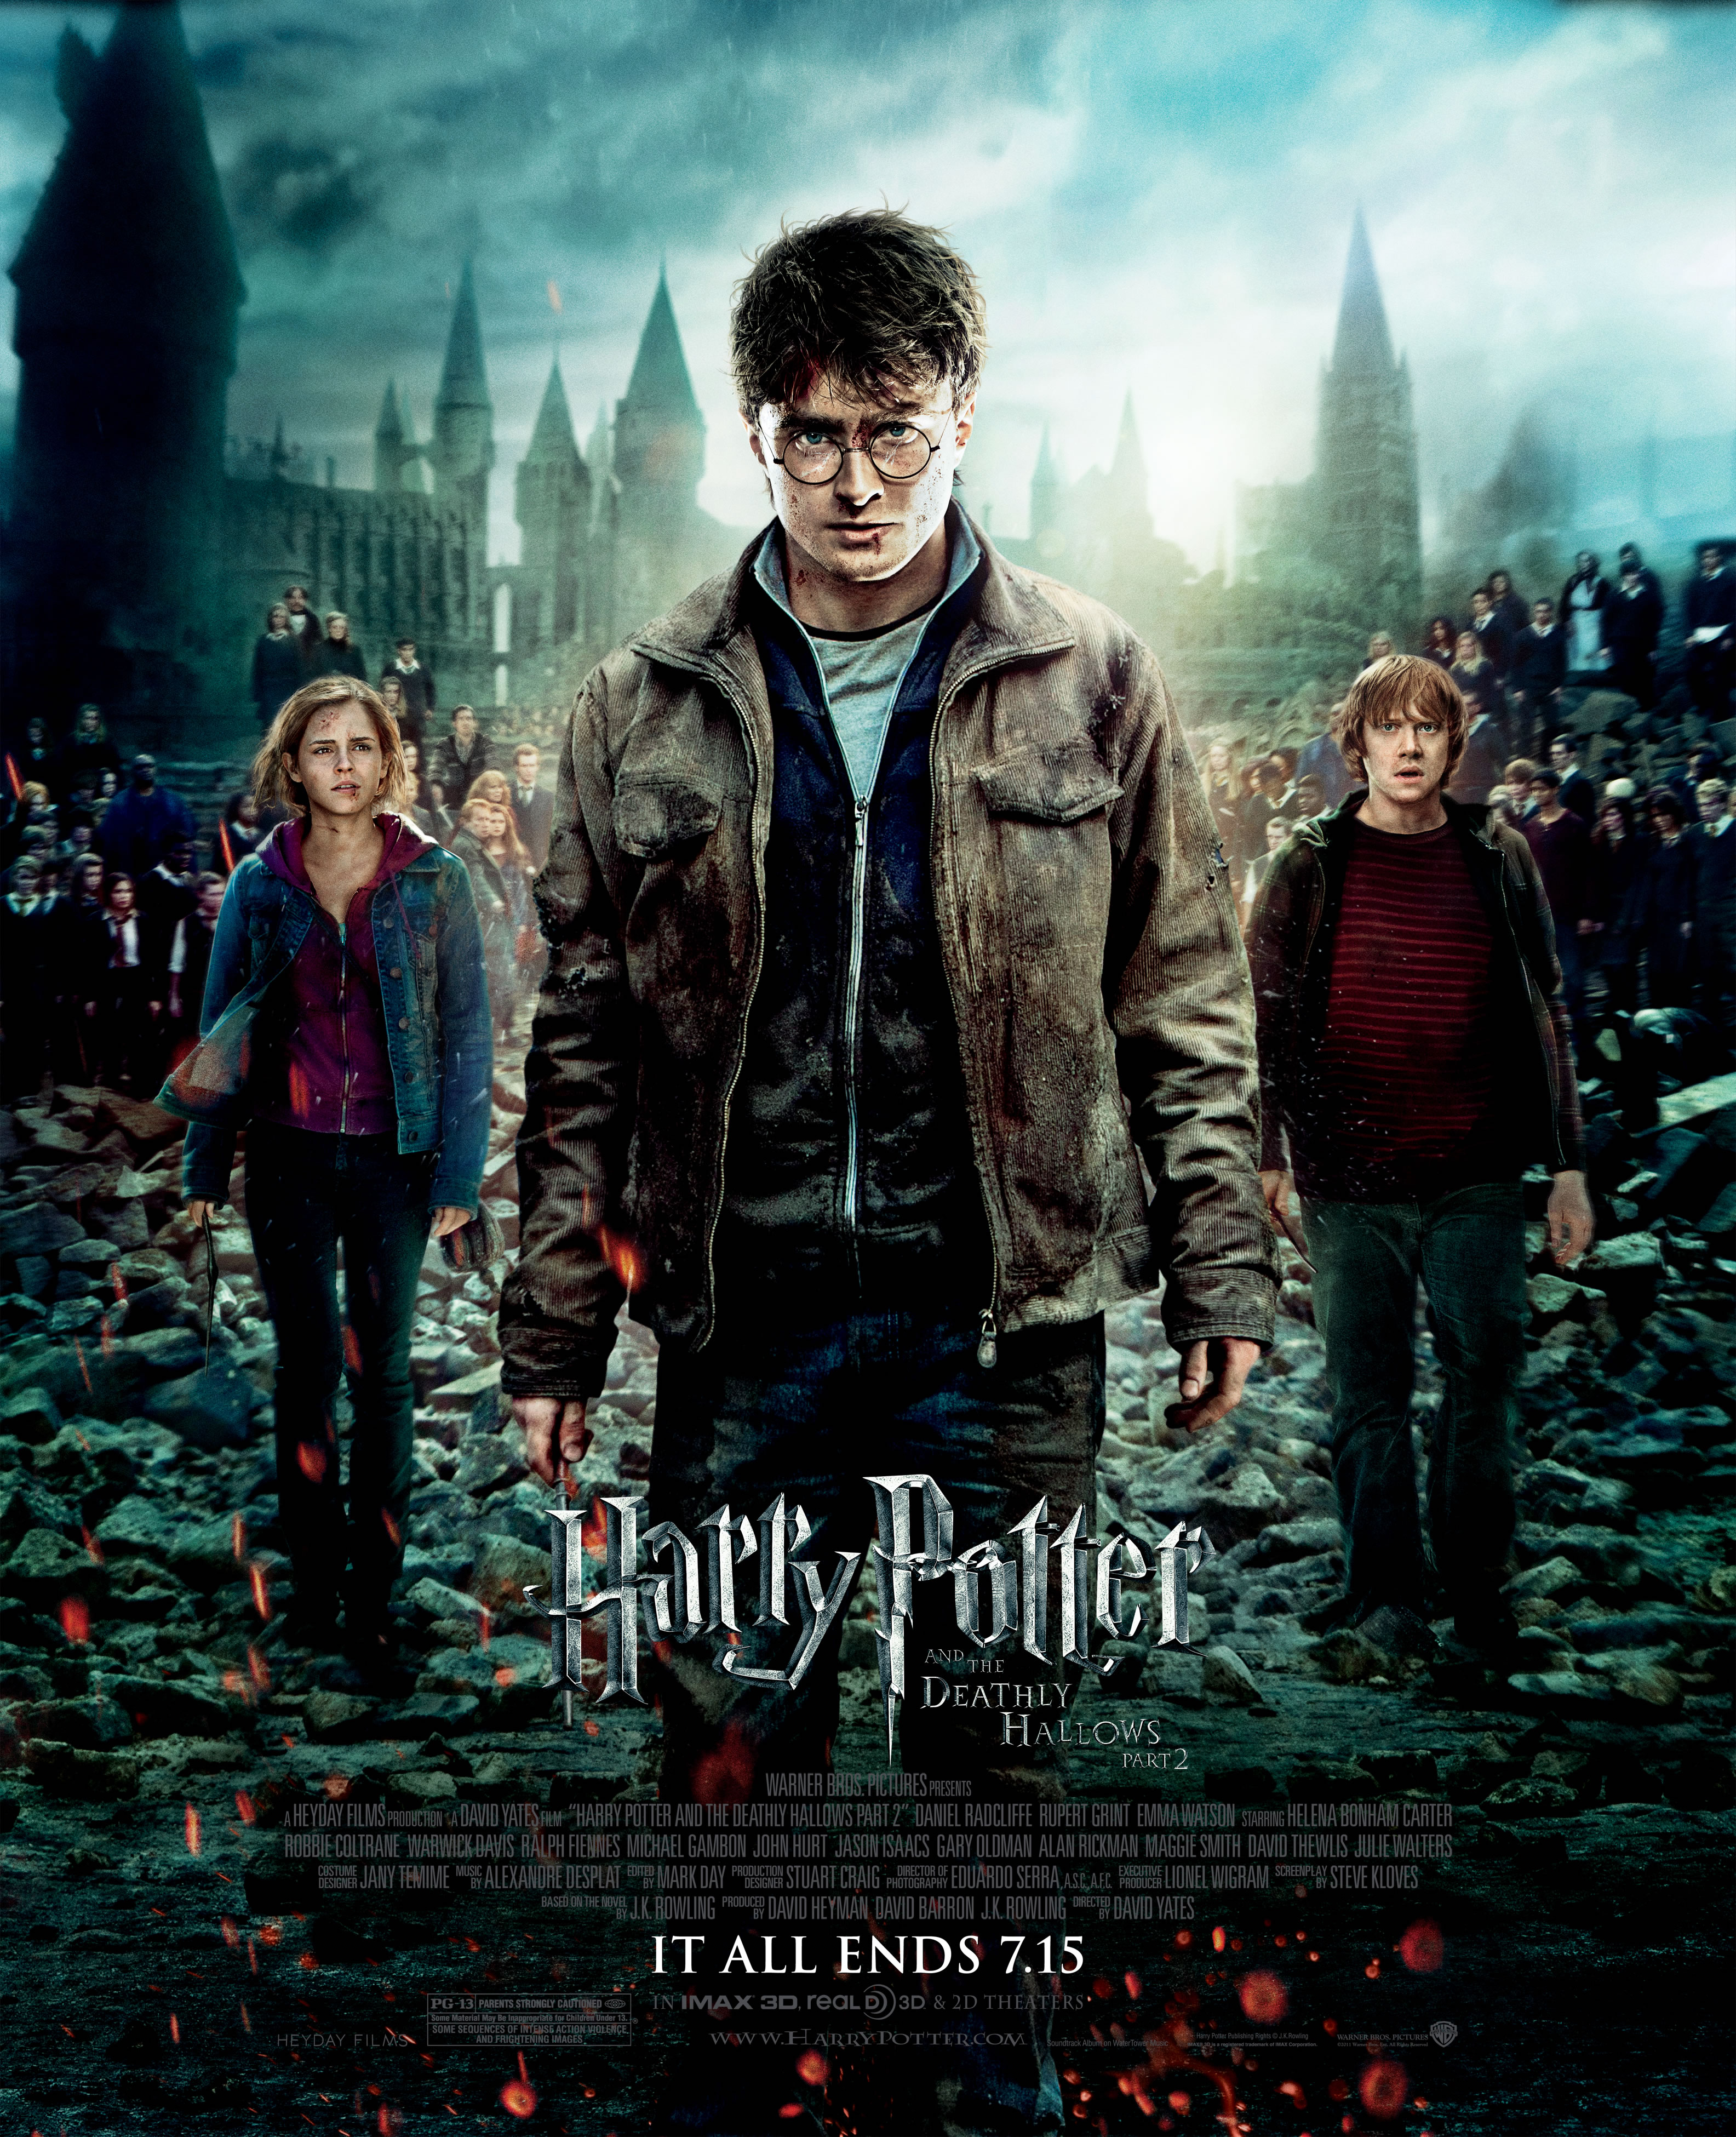 harry potter deathly hallows part 2 final poster 01 show is about to air a gay